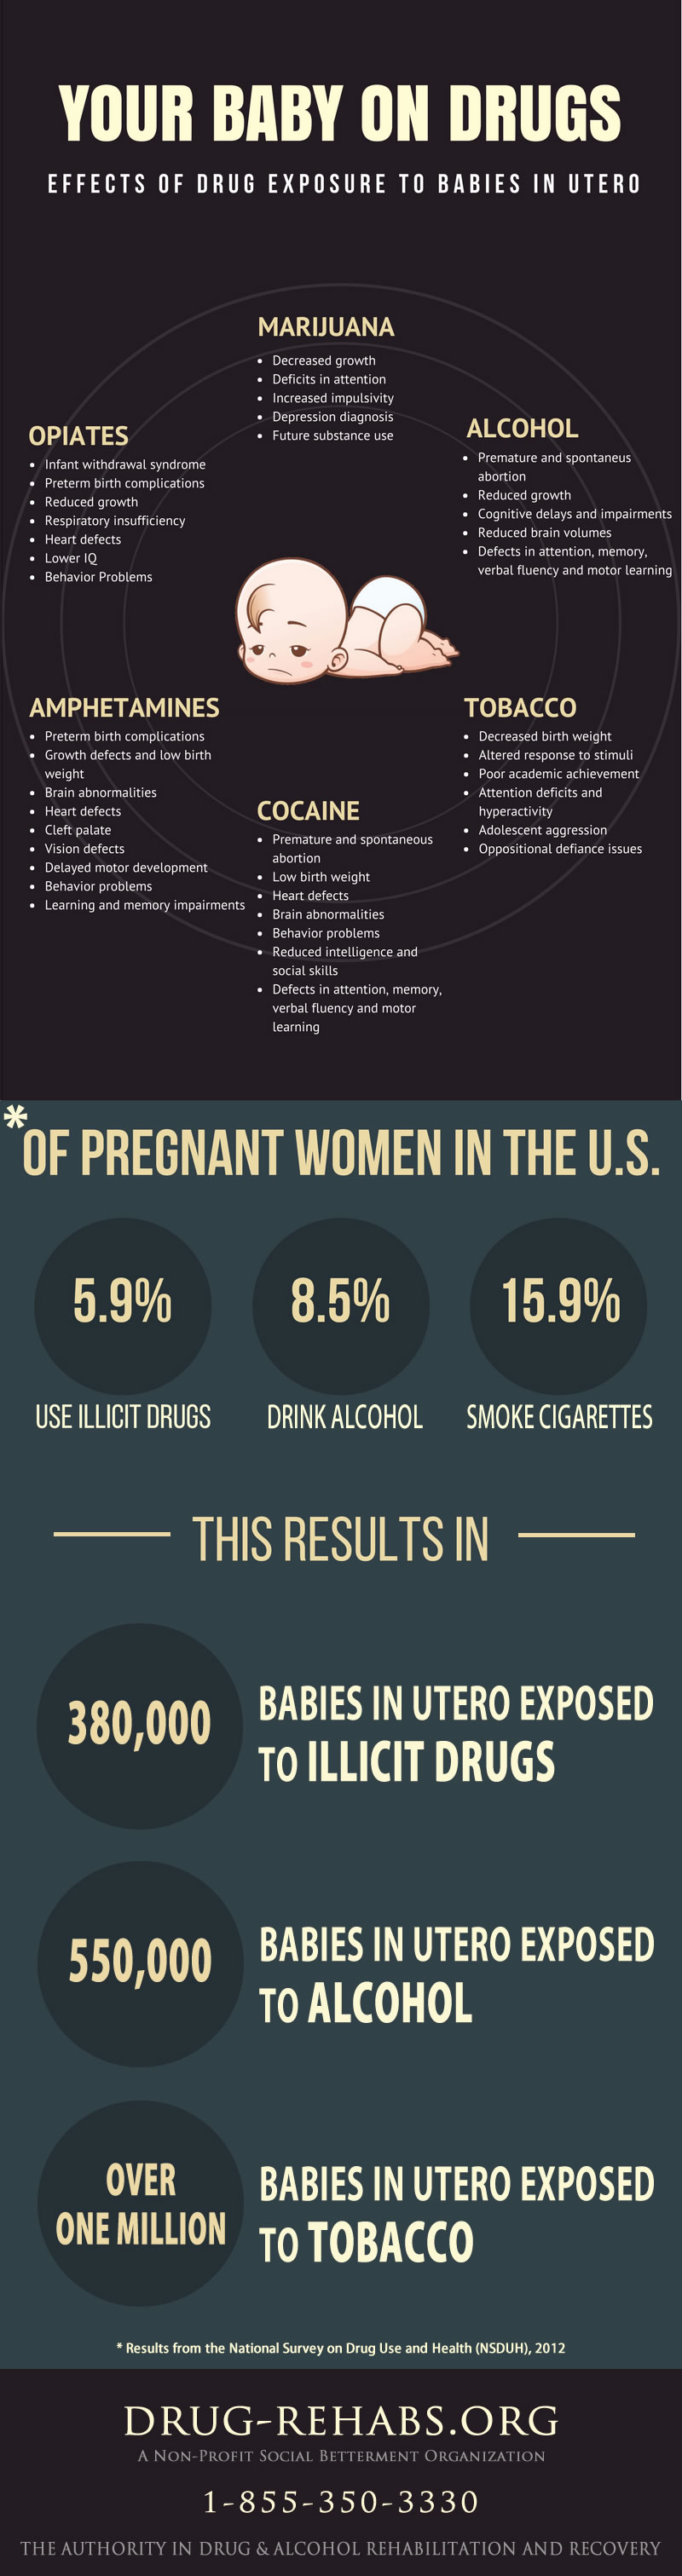 Infographic - Your Baby on Drugs